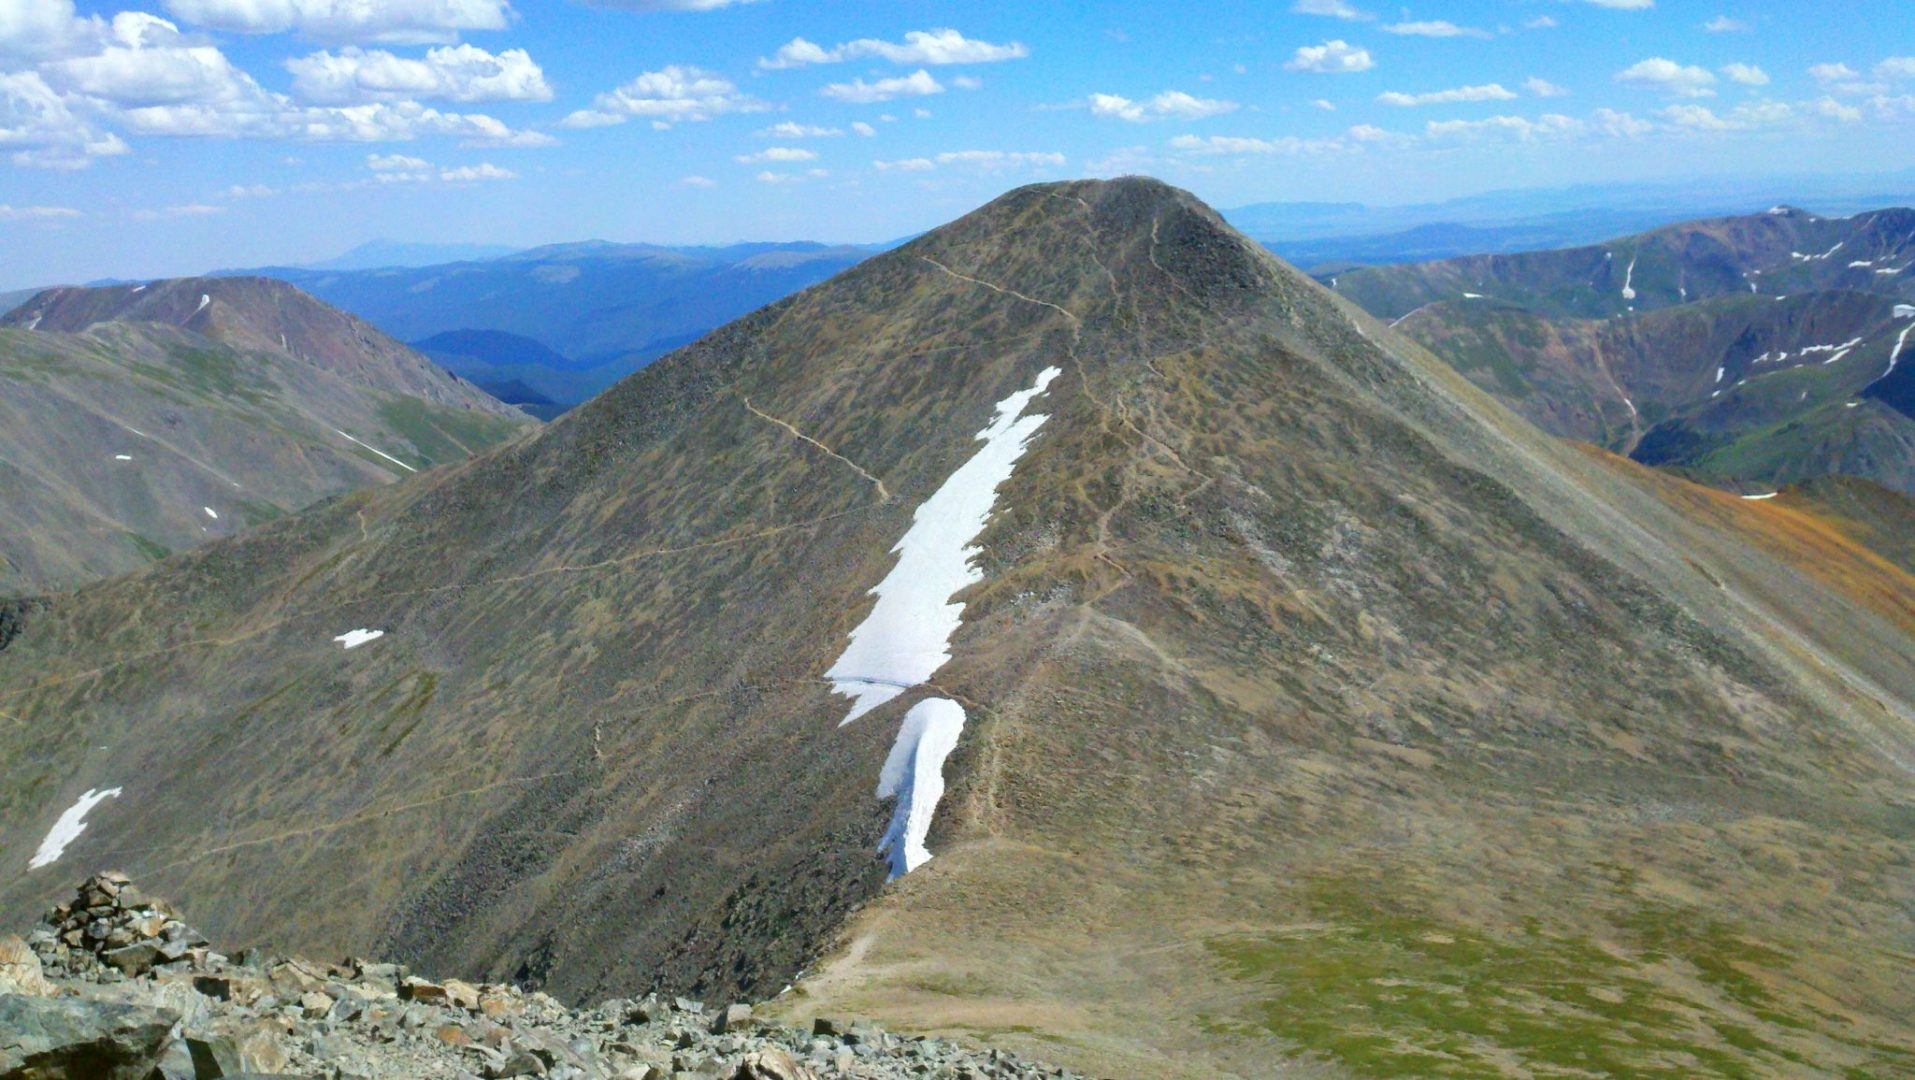 Grays Peak from Torreys Peak